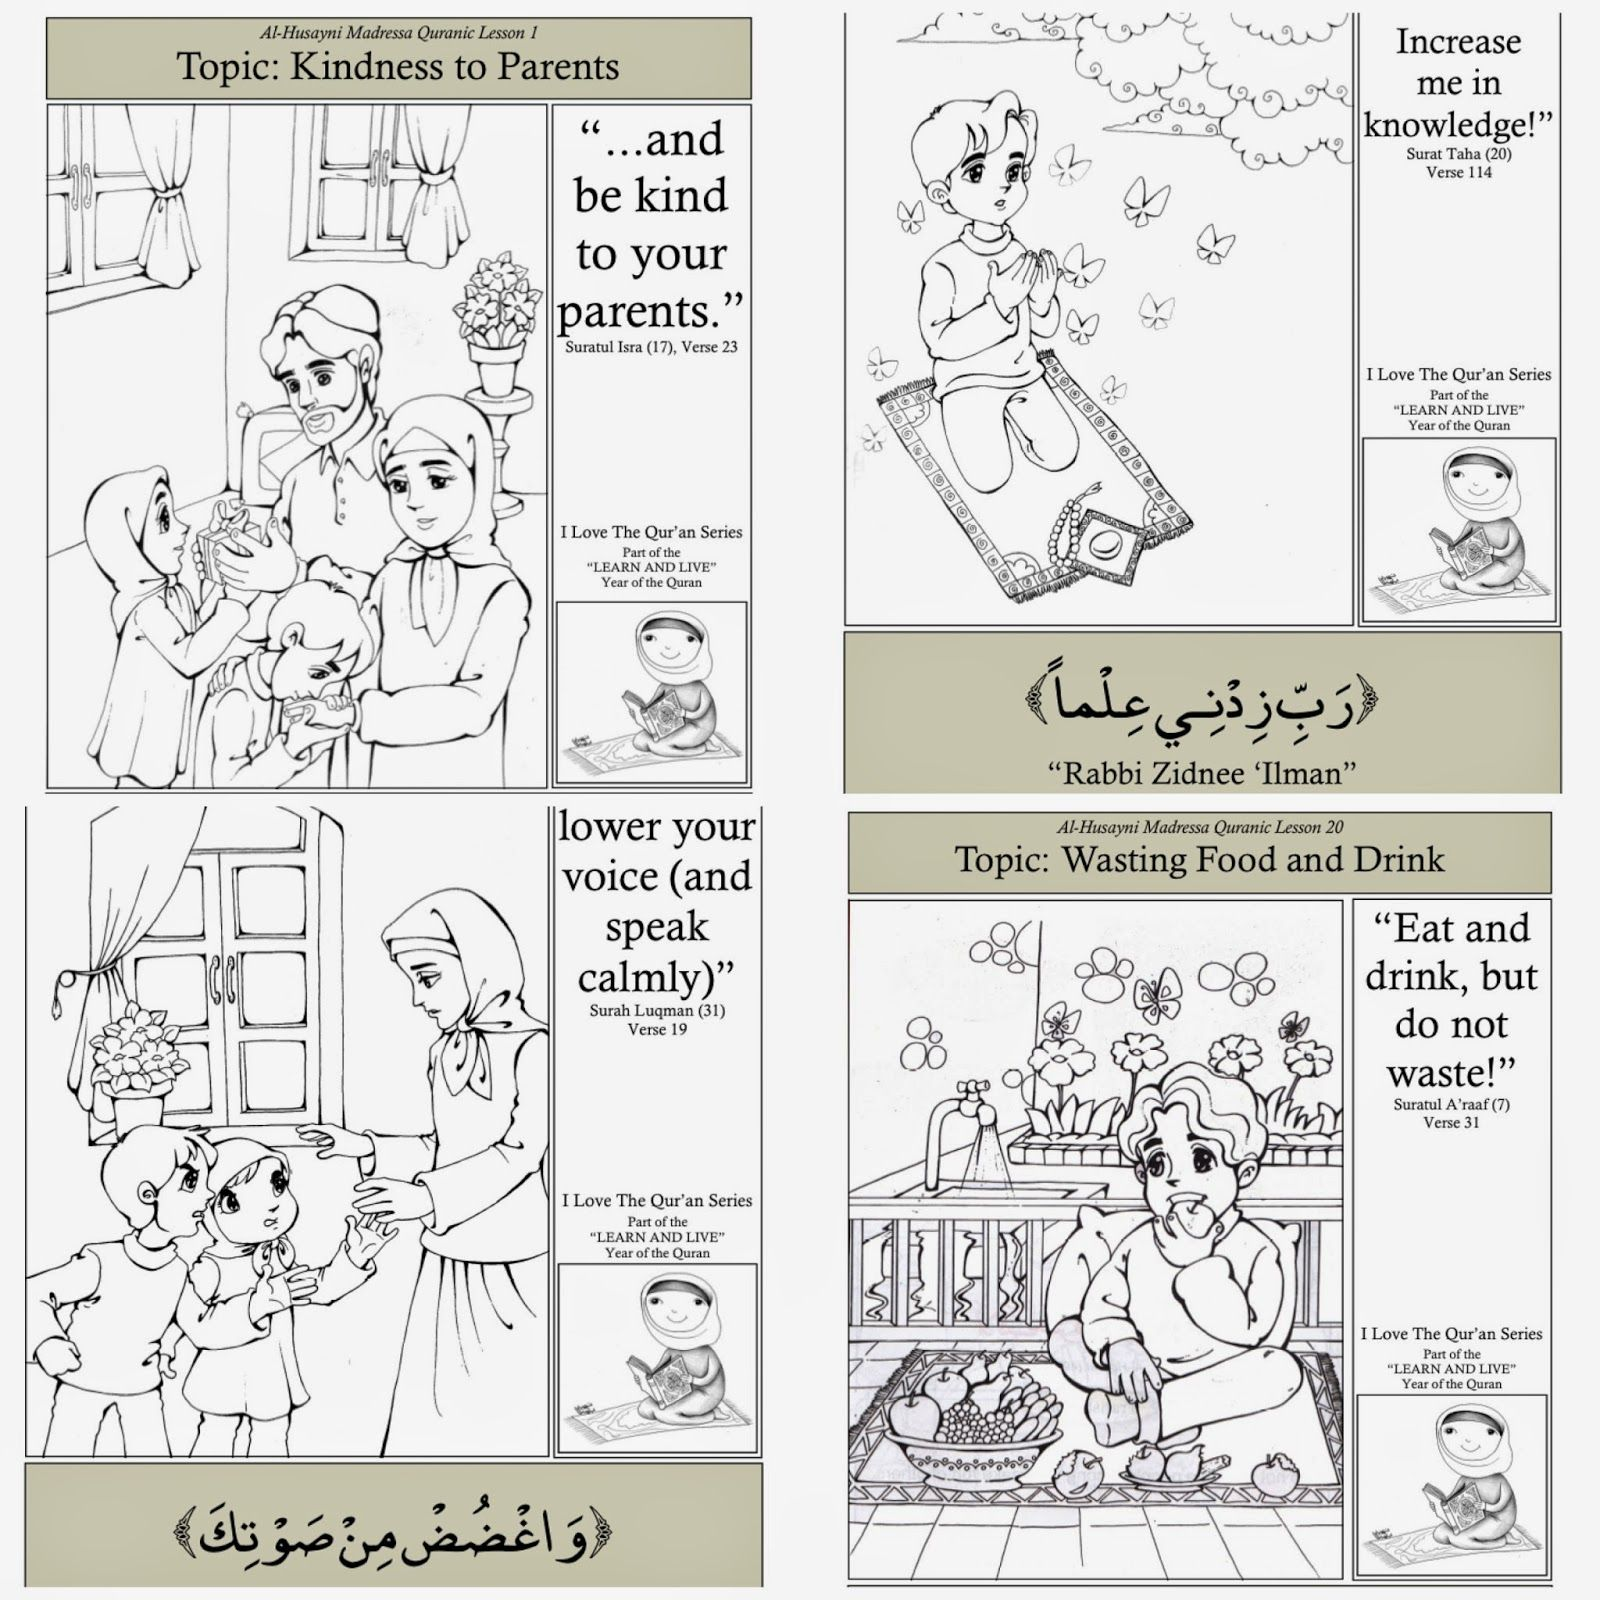 50 Quranic Lessons With Images